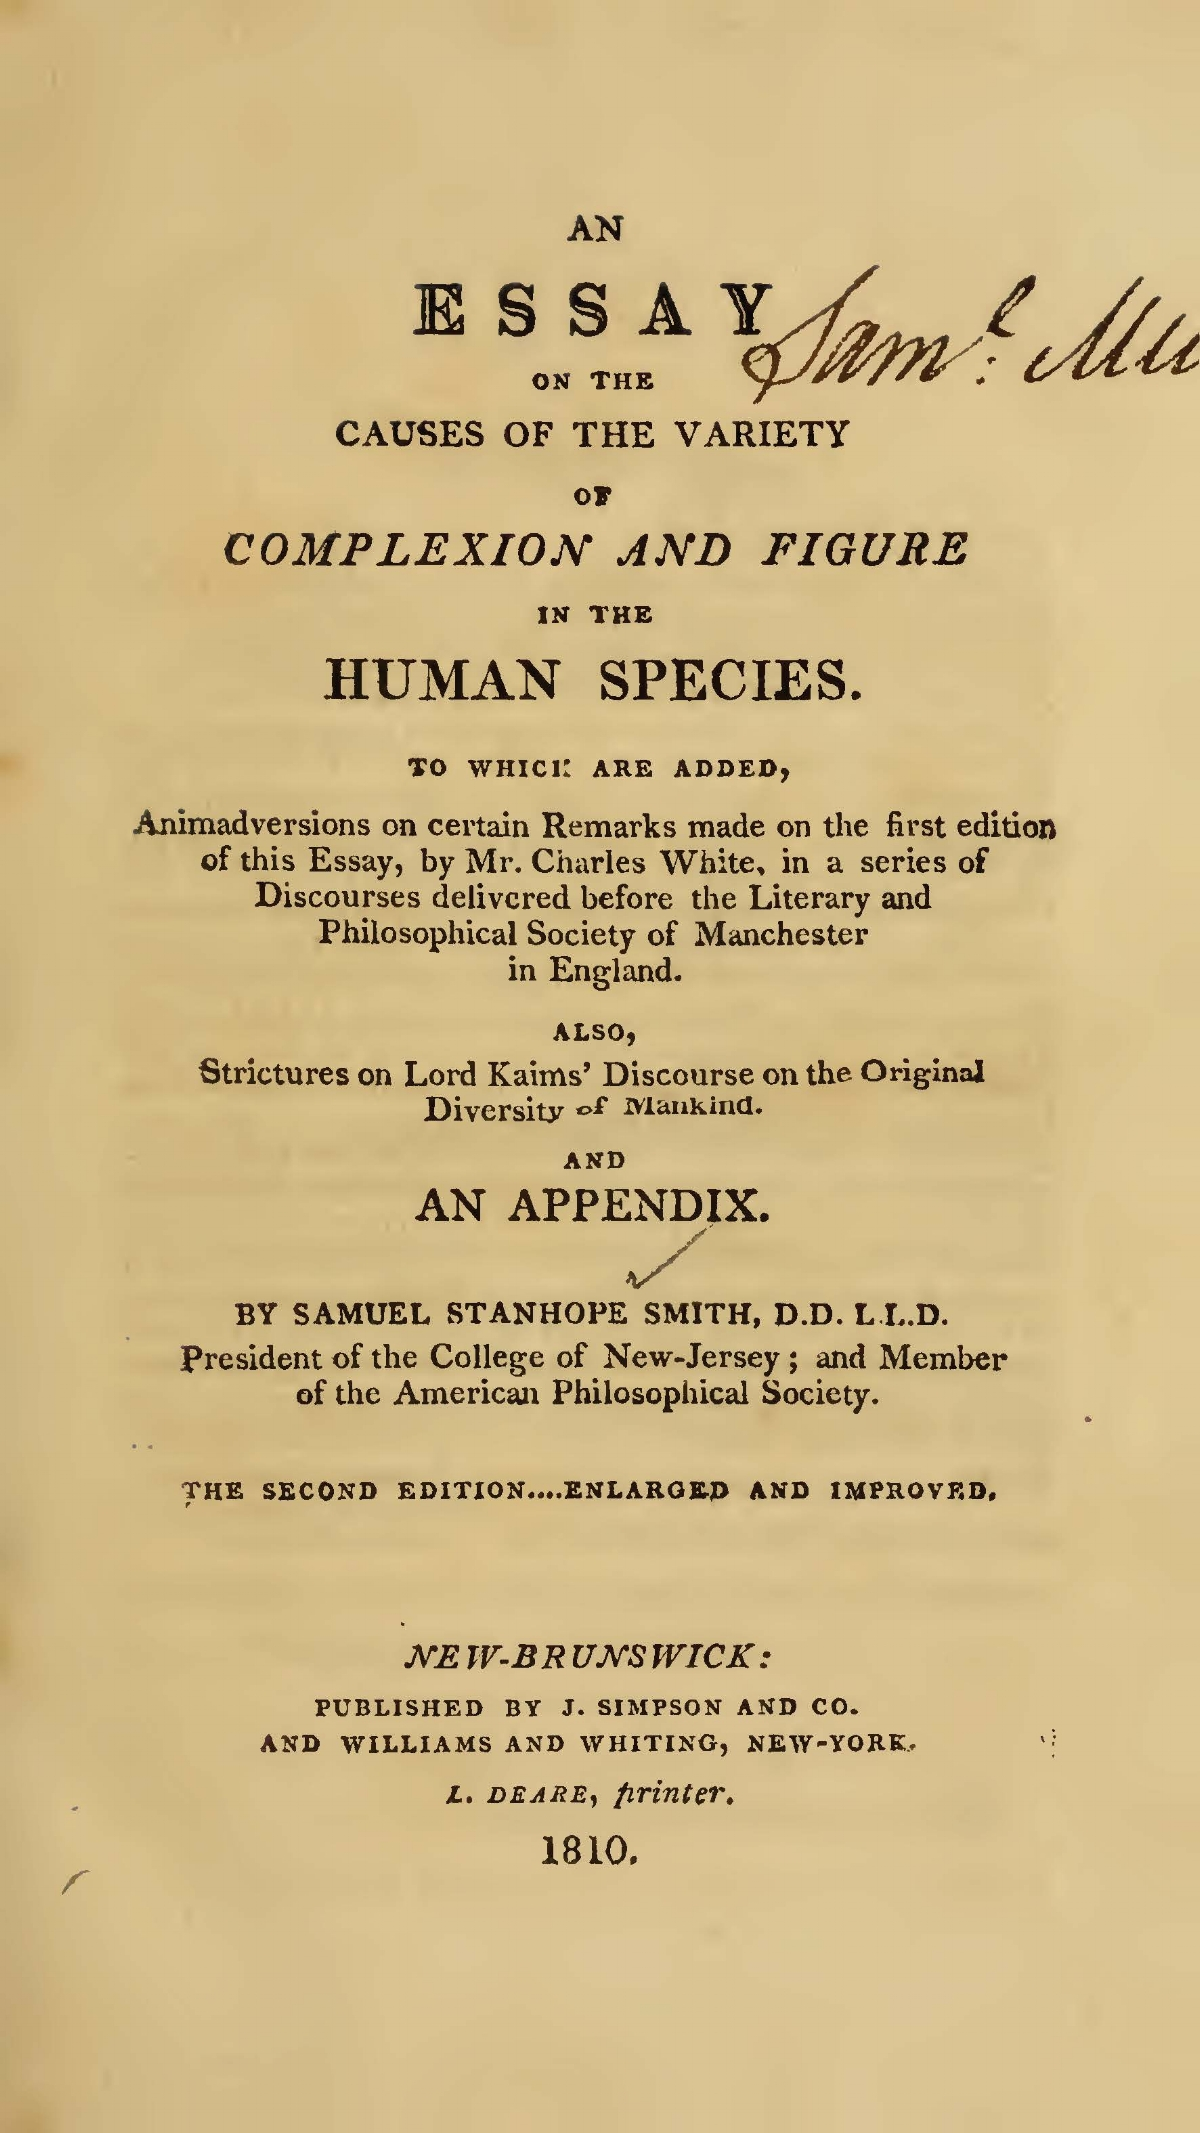 Smith, Samuel Stanhope, An Essay on the Causes of the Variety of Complexion and Figure in the Human Species Title Page.jpg